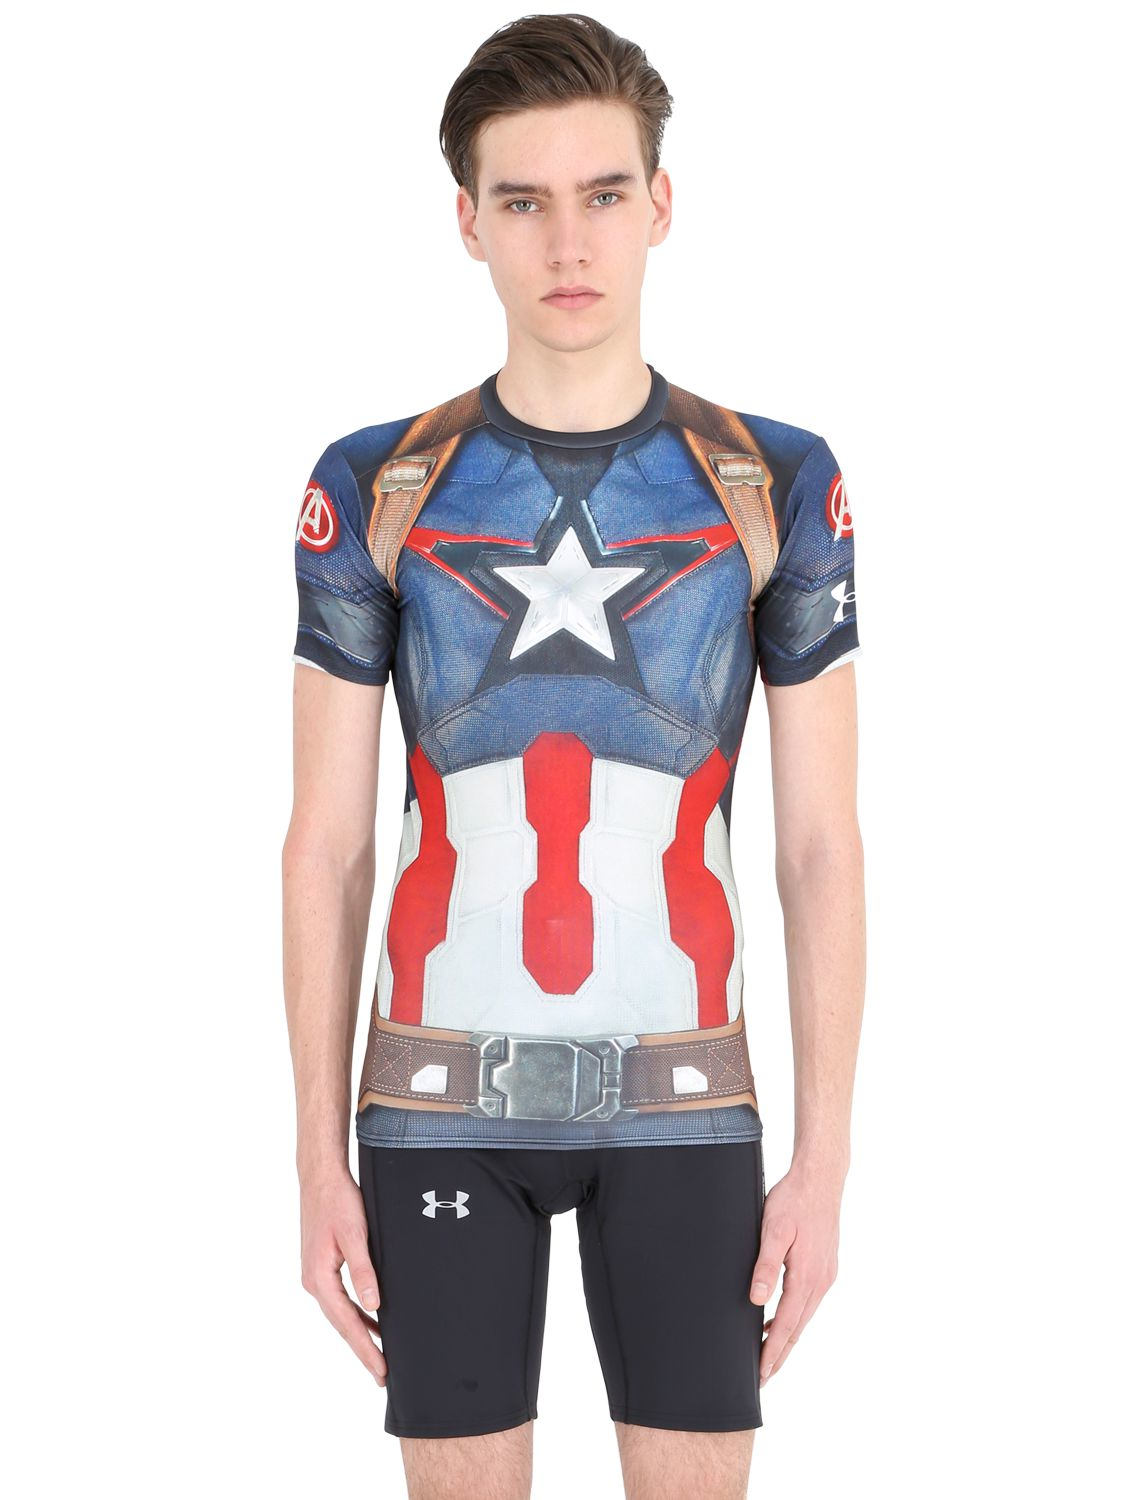 CAPTAIN AMERICA MARVEL AVENGERS COMPRESSION SHIRT LIKE UNDER ARMOUR ALTER EGO